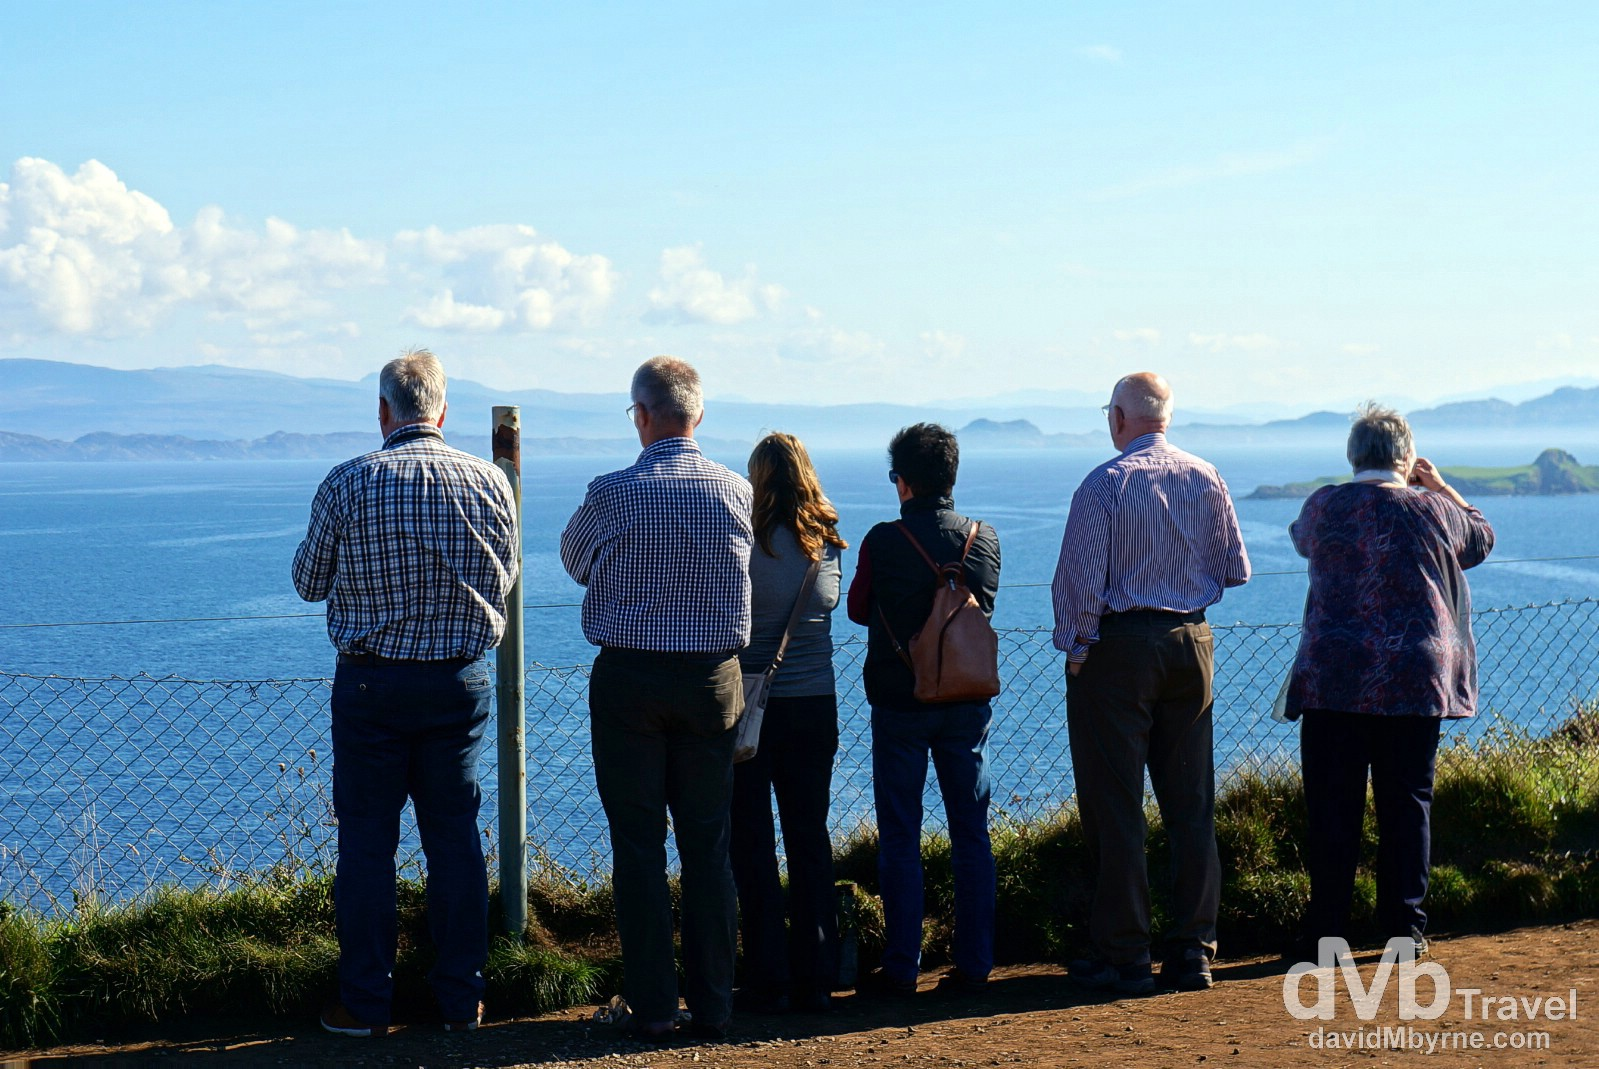 Looking out over the Sound of Raasay from the Kilt Rock viewpoint on the Trotternish Peninsula, Isle of Skye, Scotland. September 17, 2014.